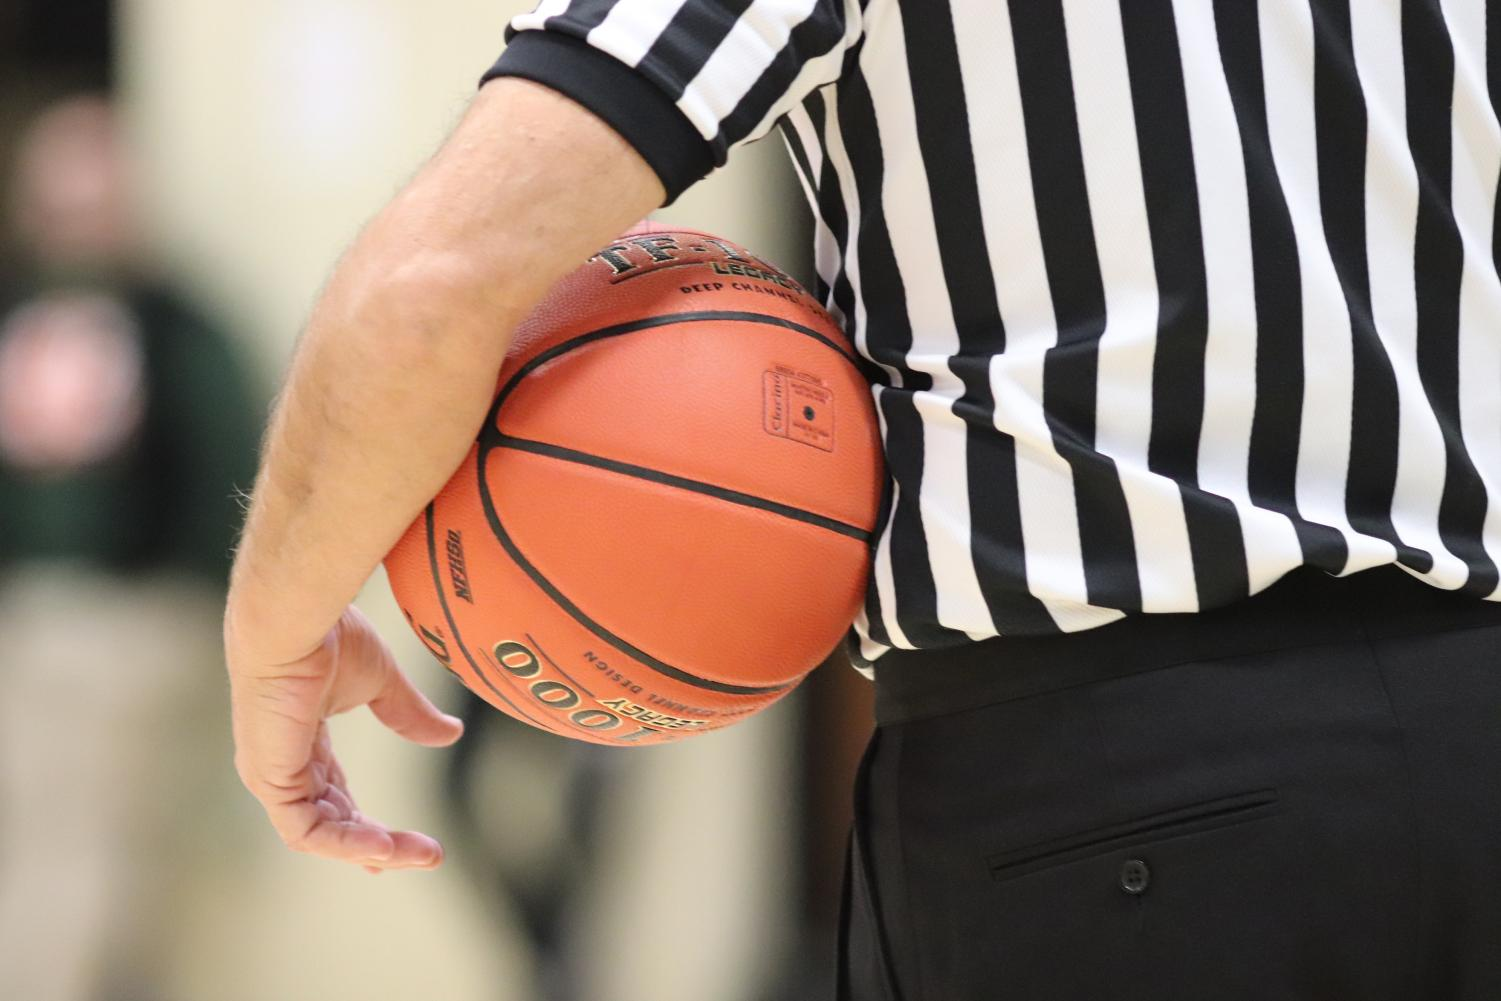 After traveling out of bounds, the ball rests in the referee's hands before being passed into play.